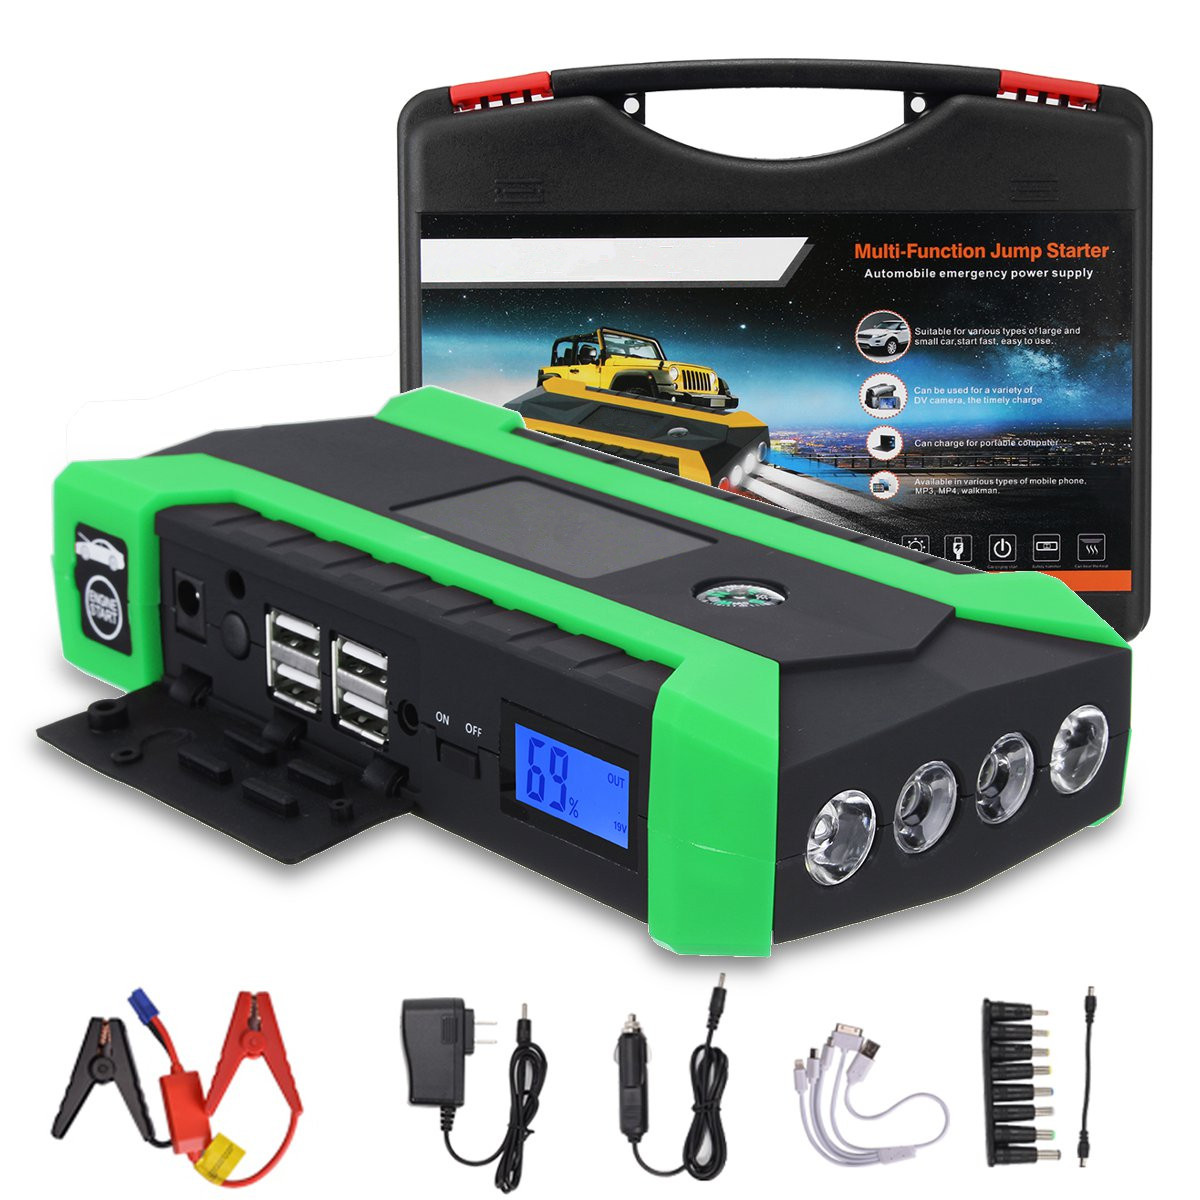 89800mAh 600A 12V 4USB Car Jump Starter Portable Car Battery Booster Charger Booster Power Bank Starting Device Car multifunction jump starter 89800mah 12v 4usb 600a portable car battery booster charger booster power bank starting device